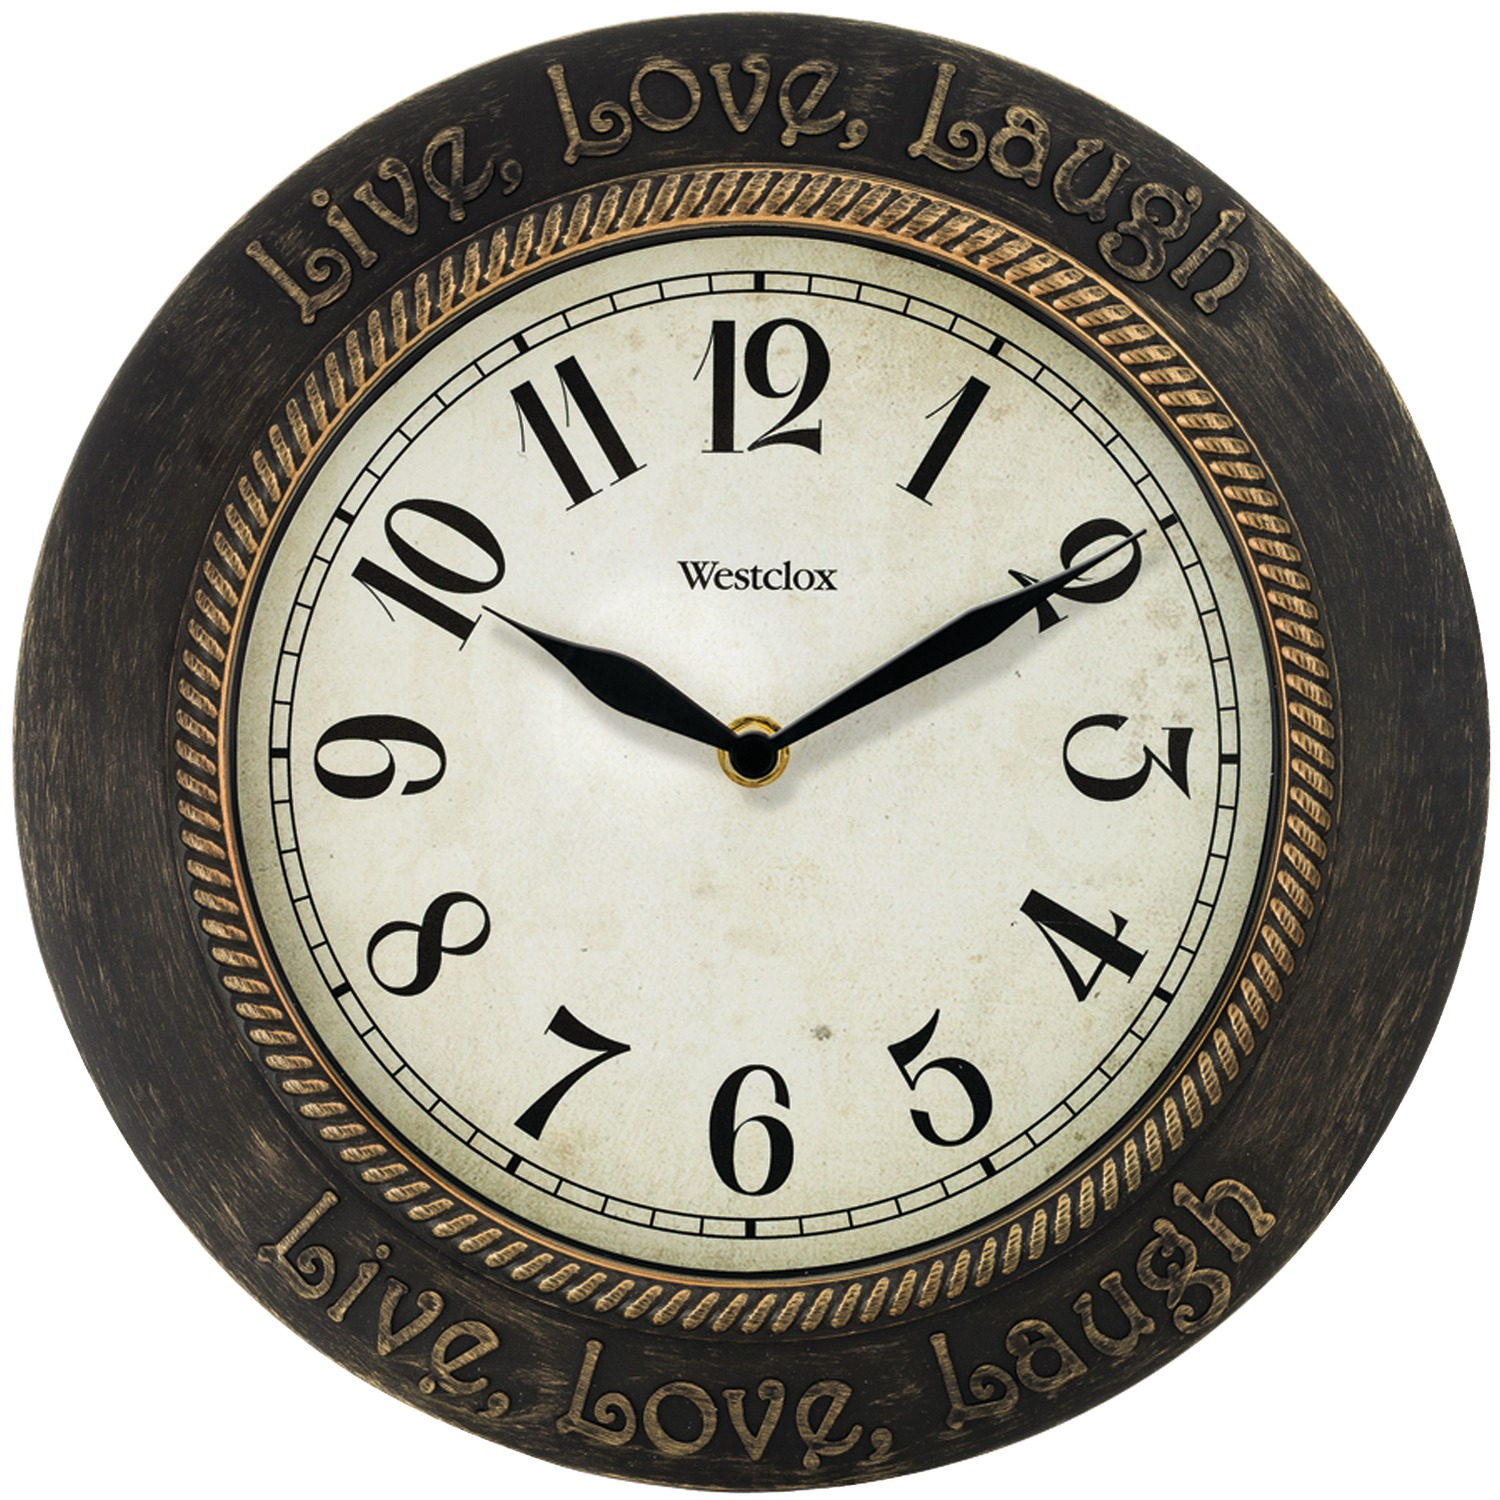 Westclox 32097 11 Quot Round Live Love Laugh Wall Clock